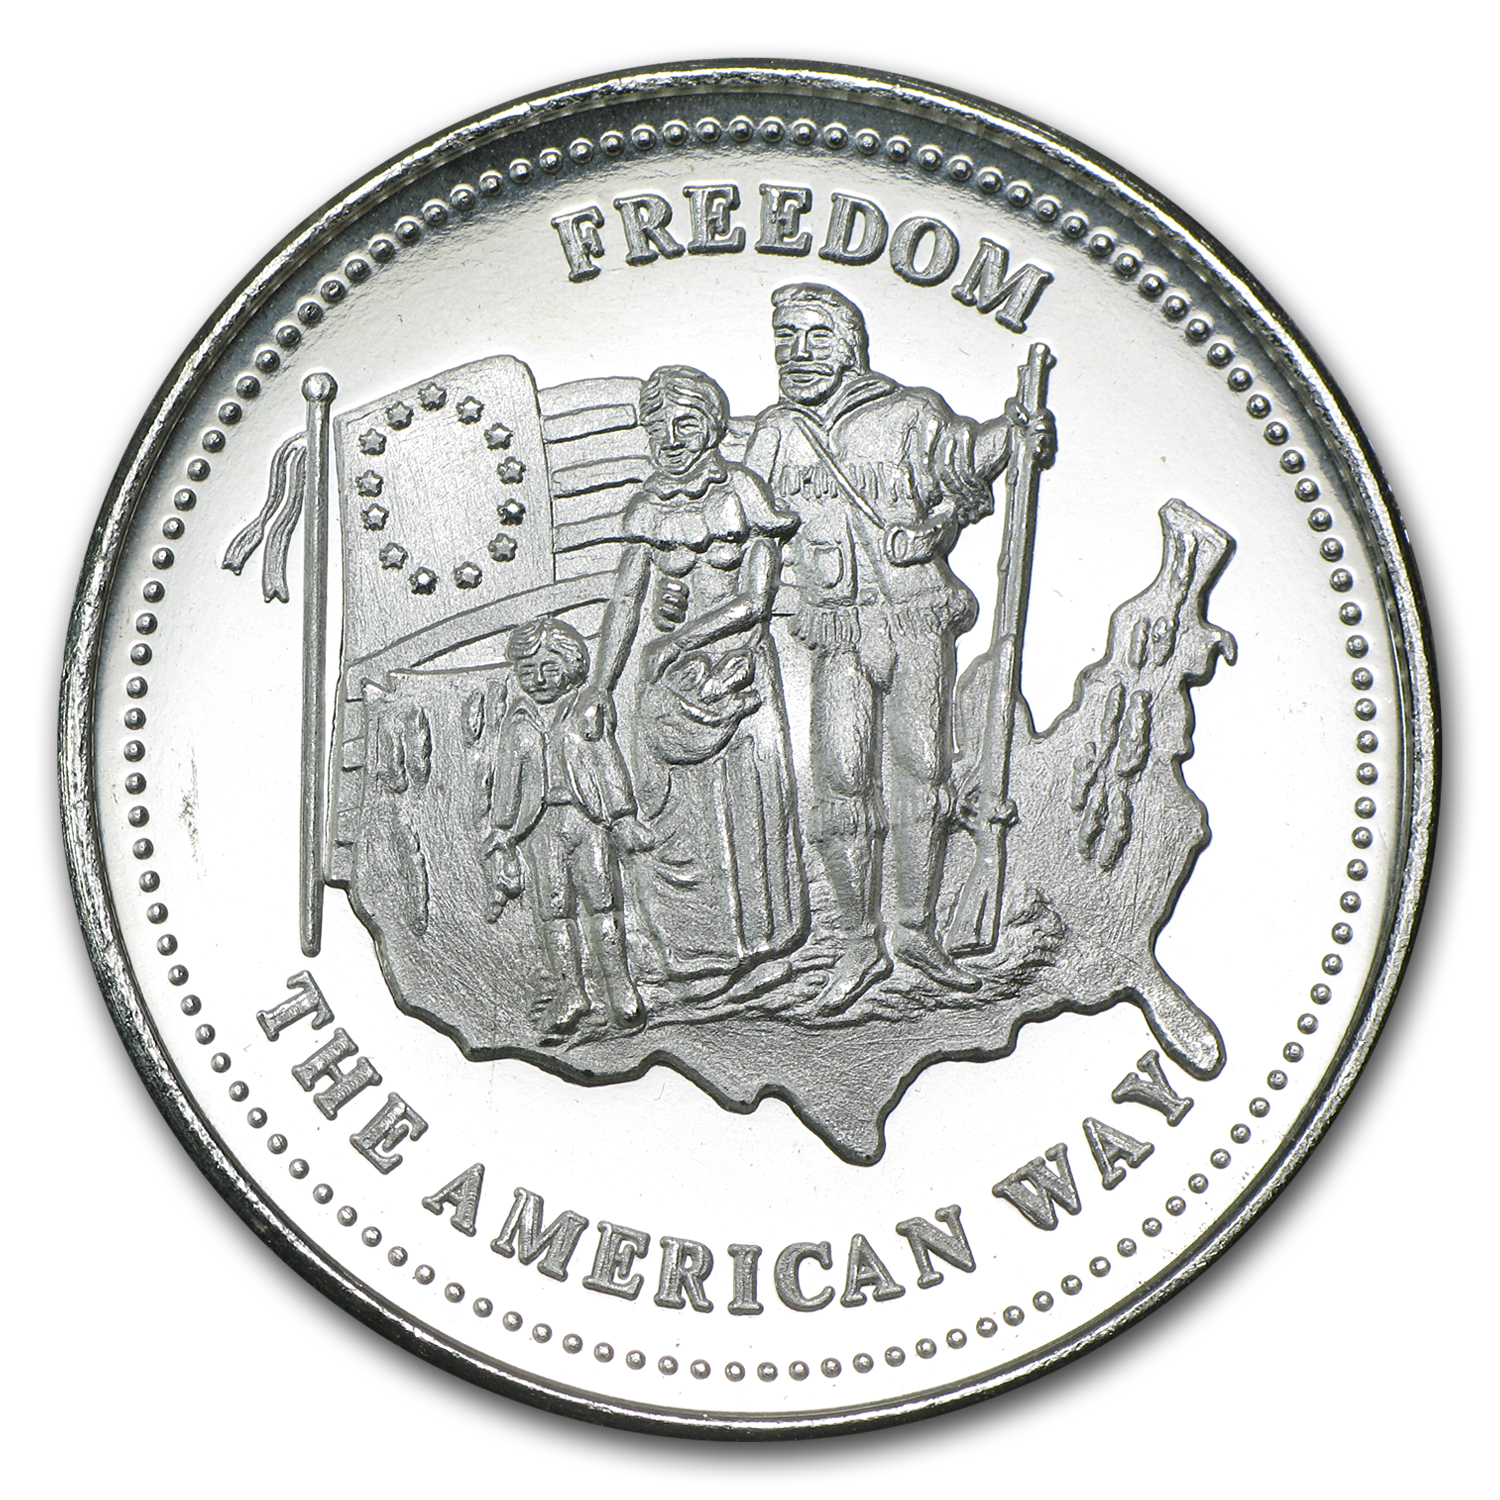 1 oz Silver Round - Johnson Matthey (Freedom, The American Way)